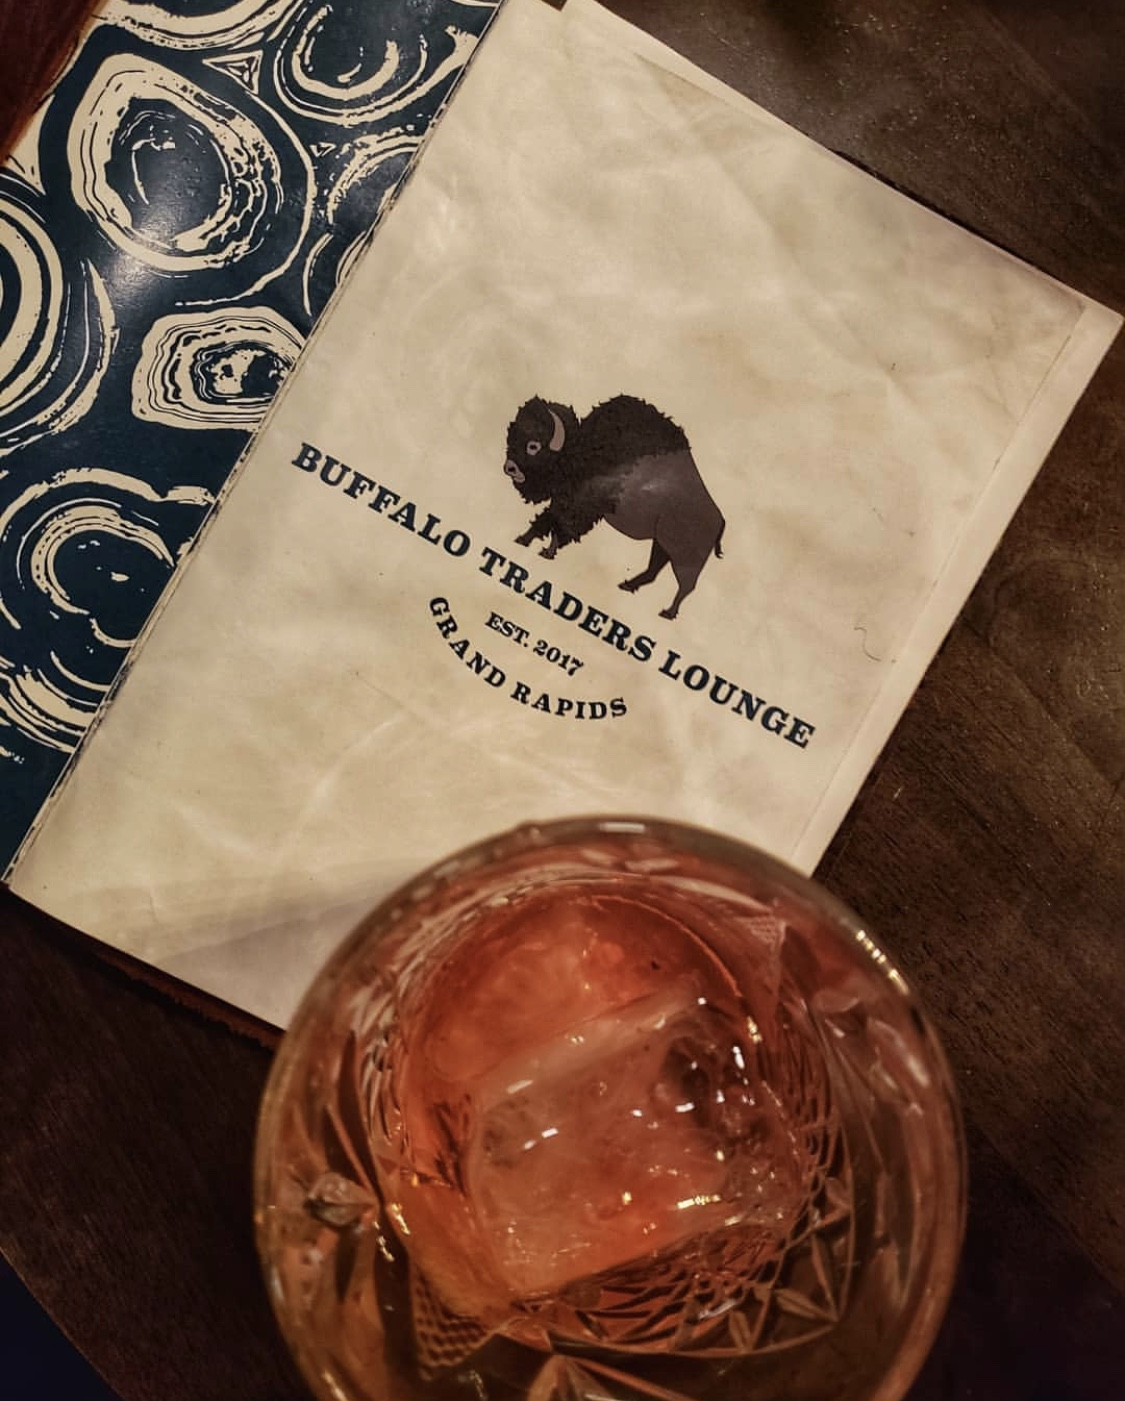 east grand rapids food restaurant drinks buffalo traders lounge